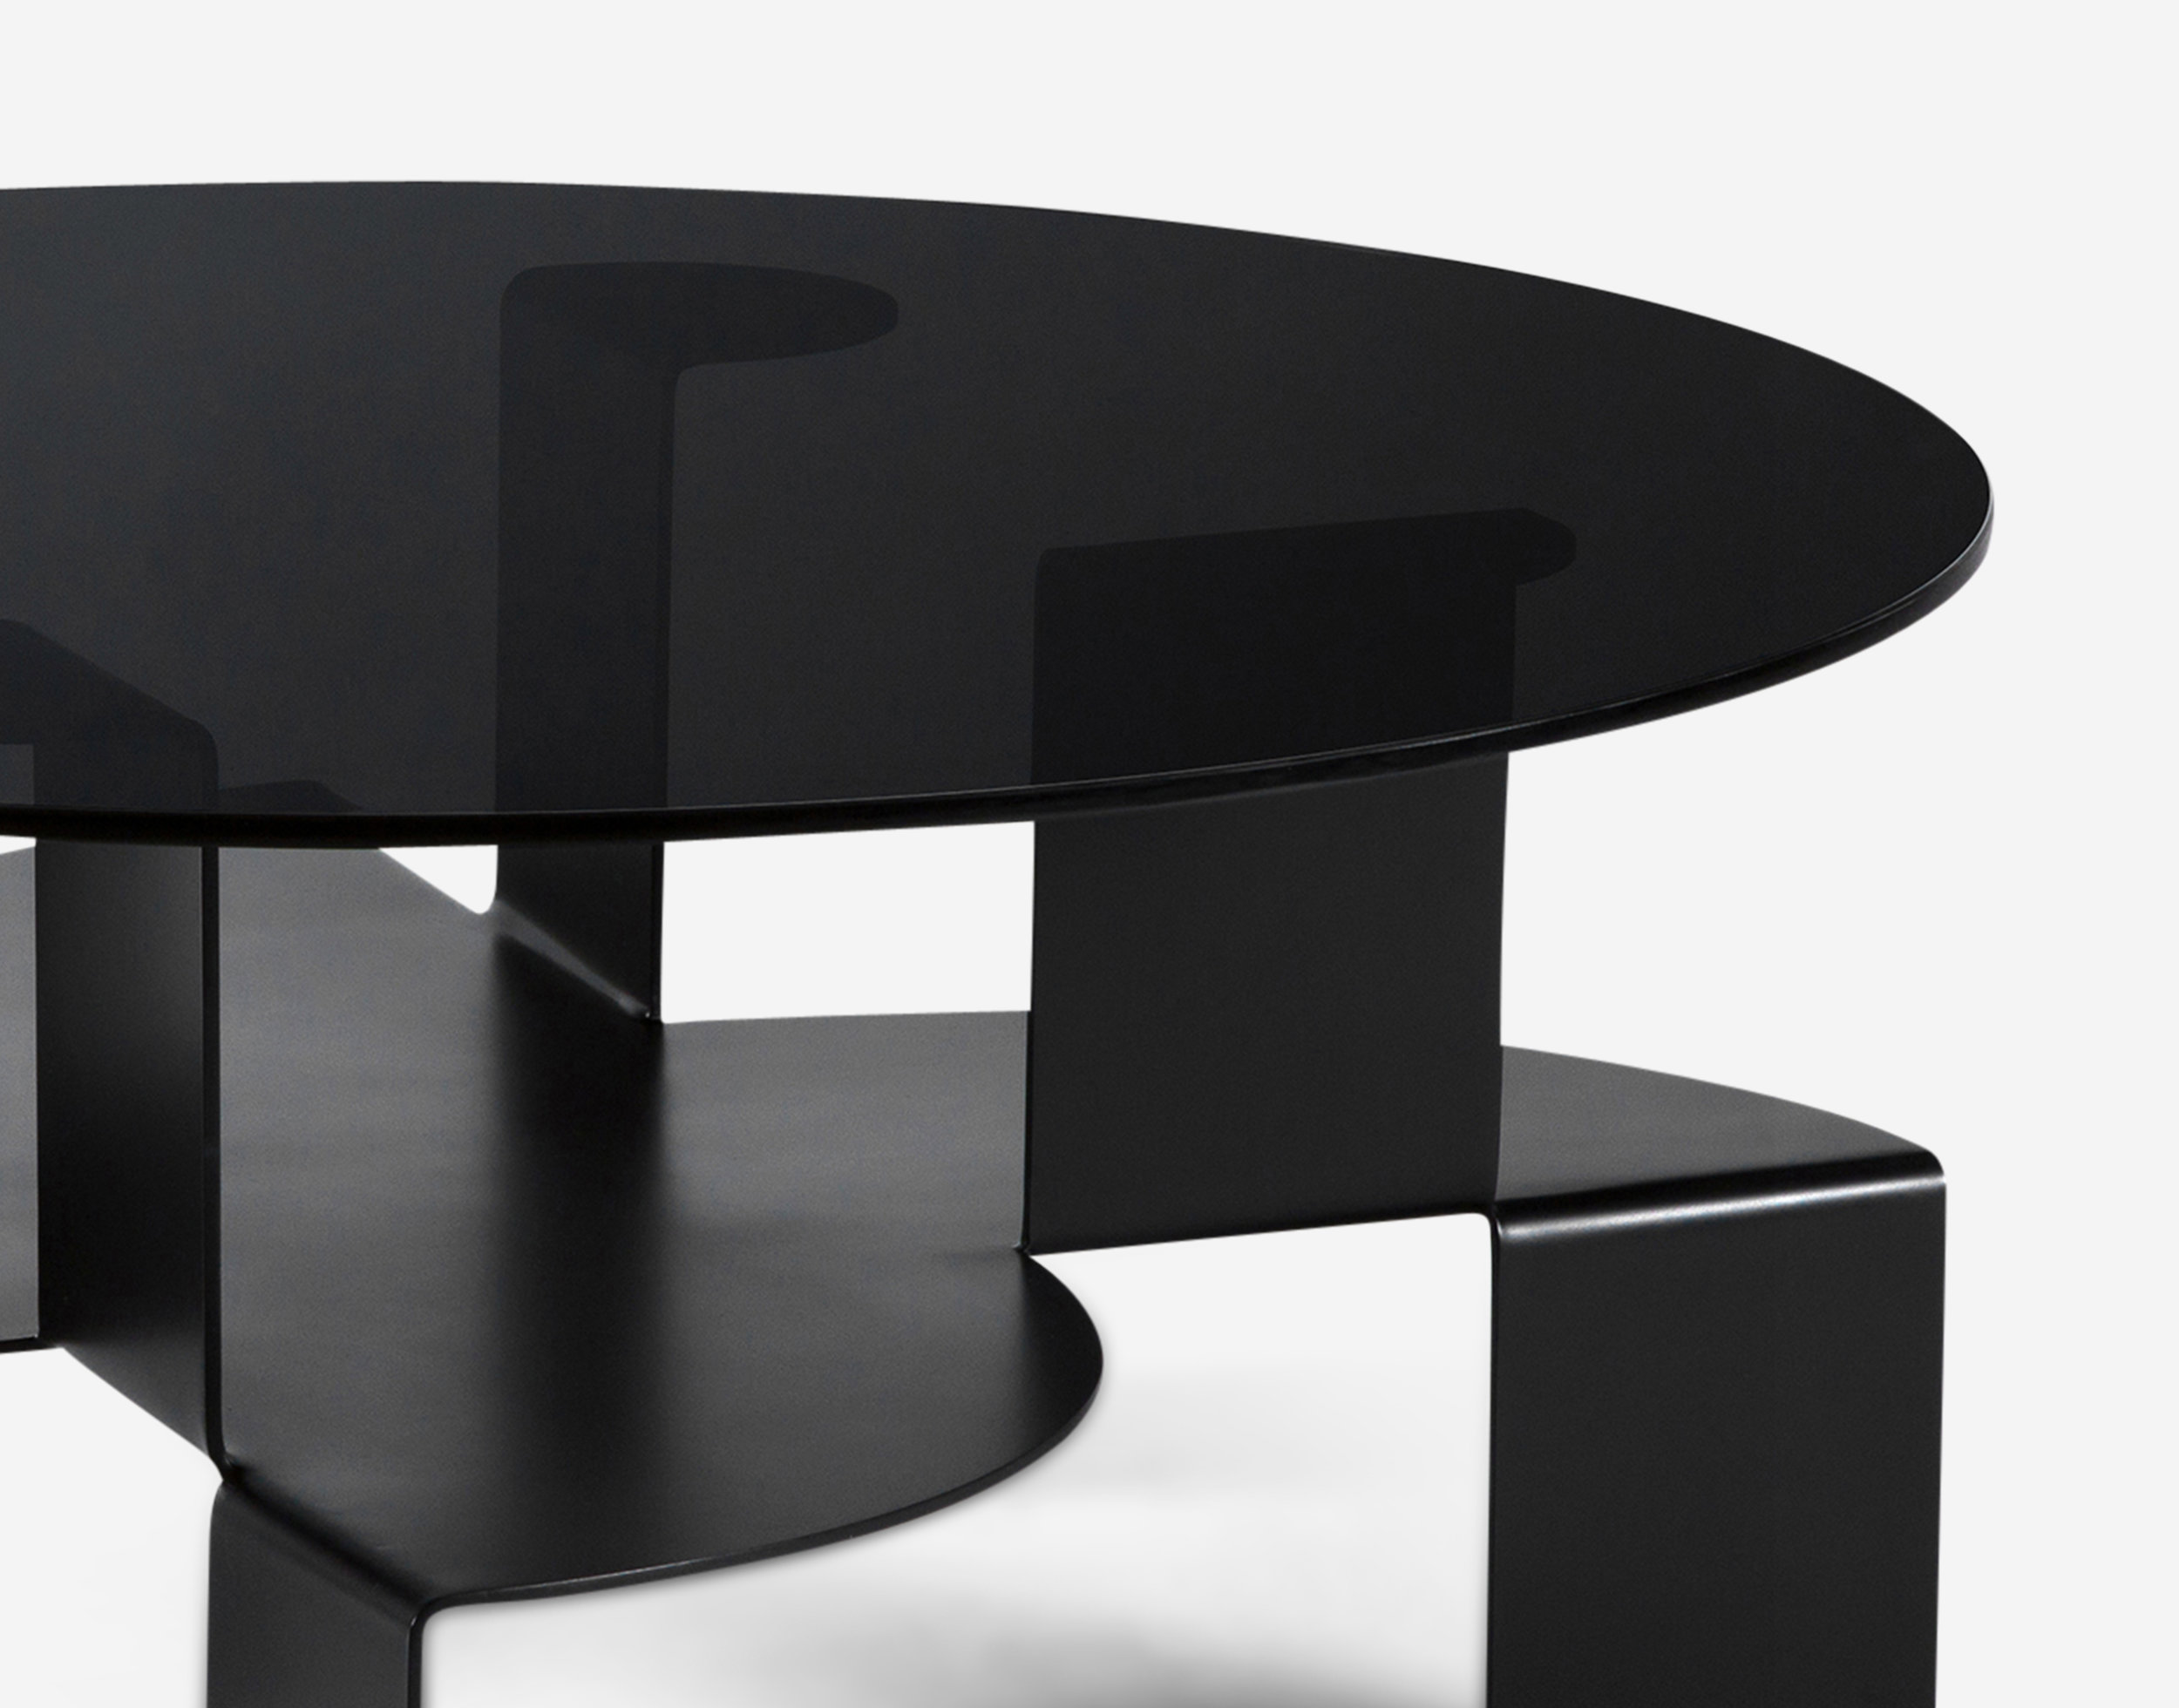 Luteca_PRV_Aspa-Coffee-Table_Black-Steel-Black-Glass_D2-W.jpg